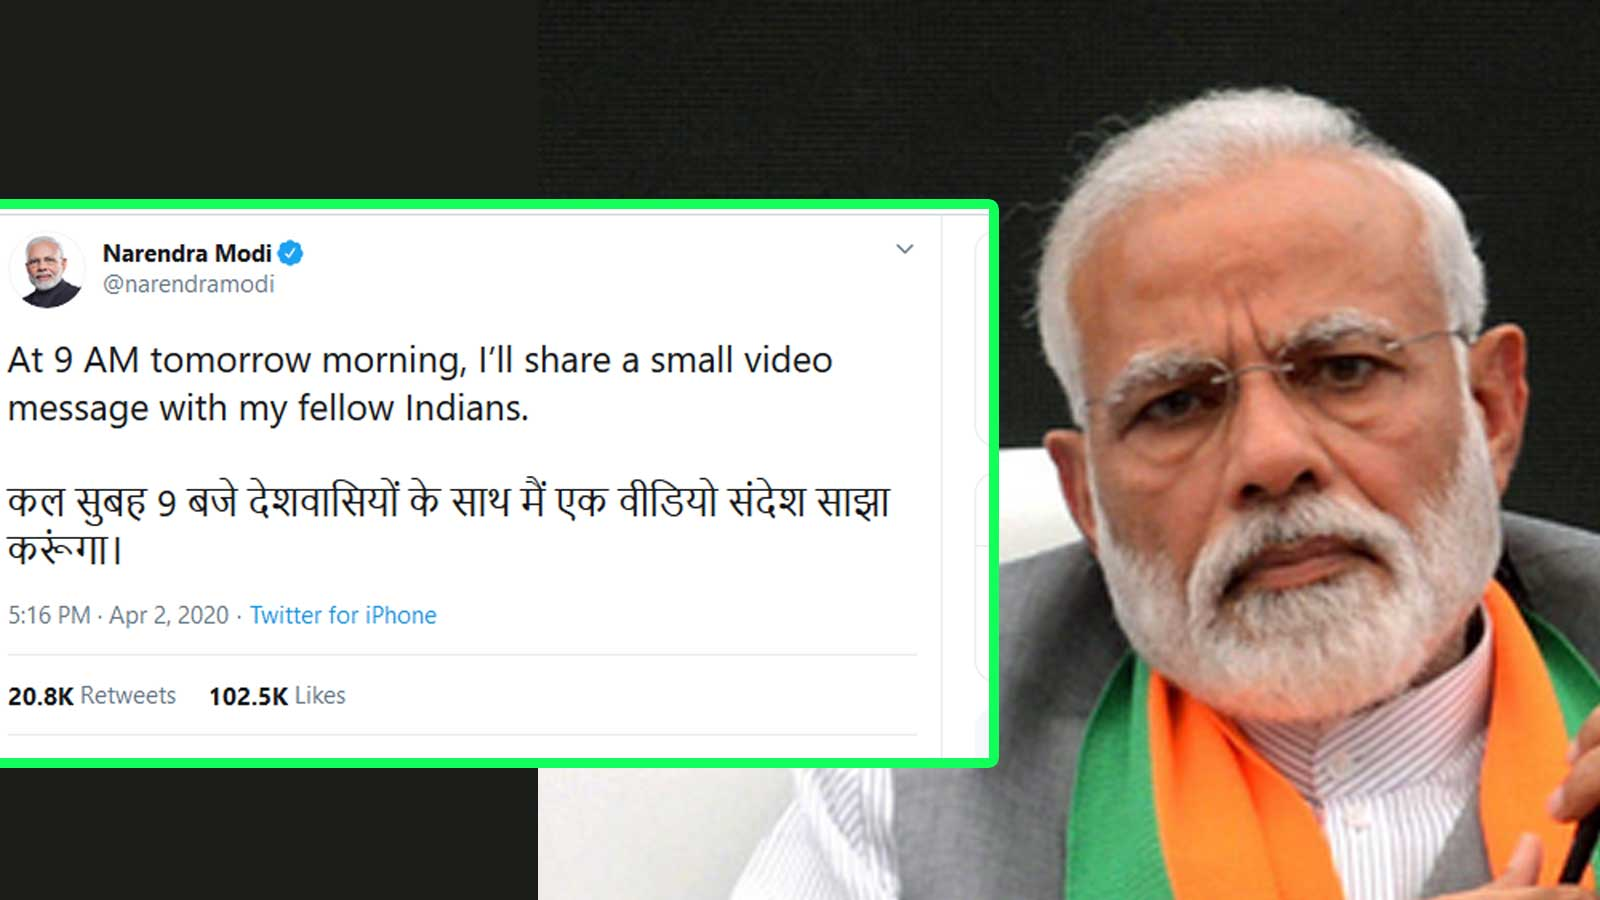 amid-ongoing-21-day-lockdown-pm-narendra-modi-to-share-video-message-with-public-tomorrow-at-9-am